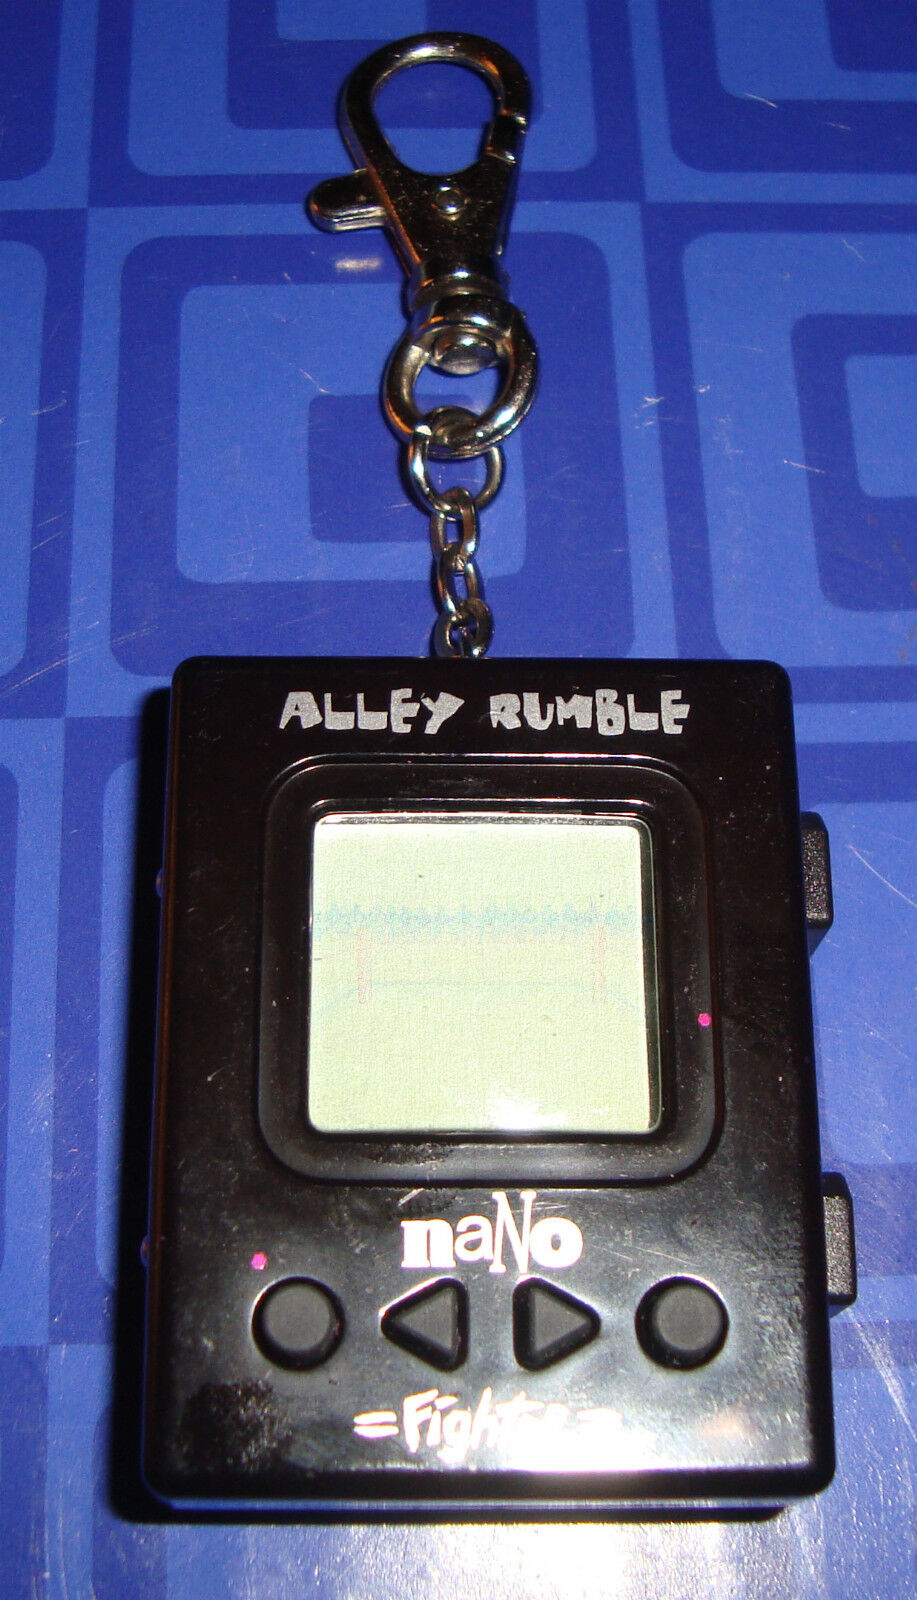 NaNo Alley Rumble Fighter Keychain Electronic Handheld Game Awesome Game